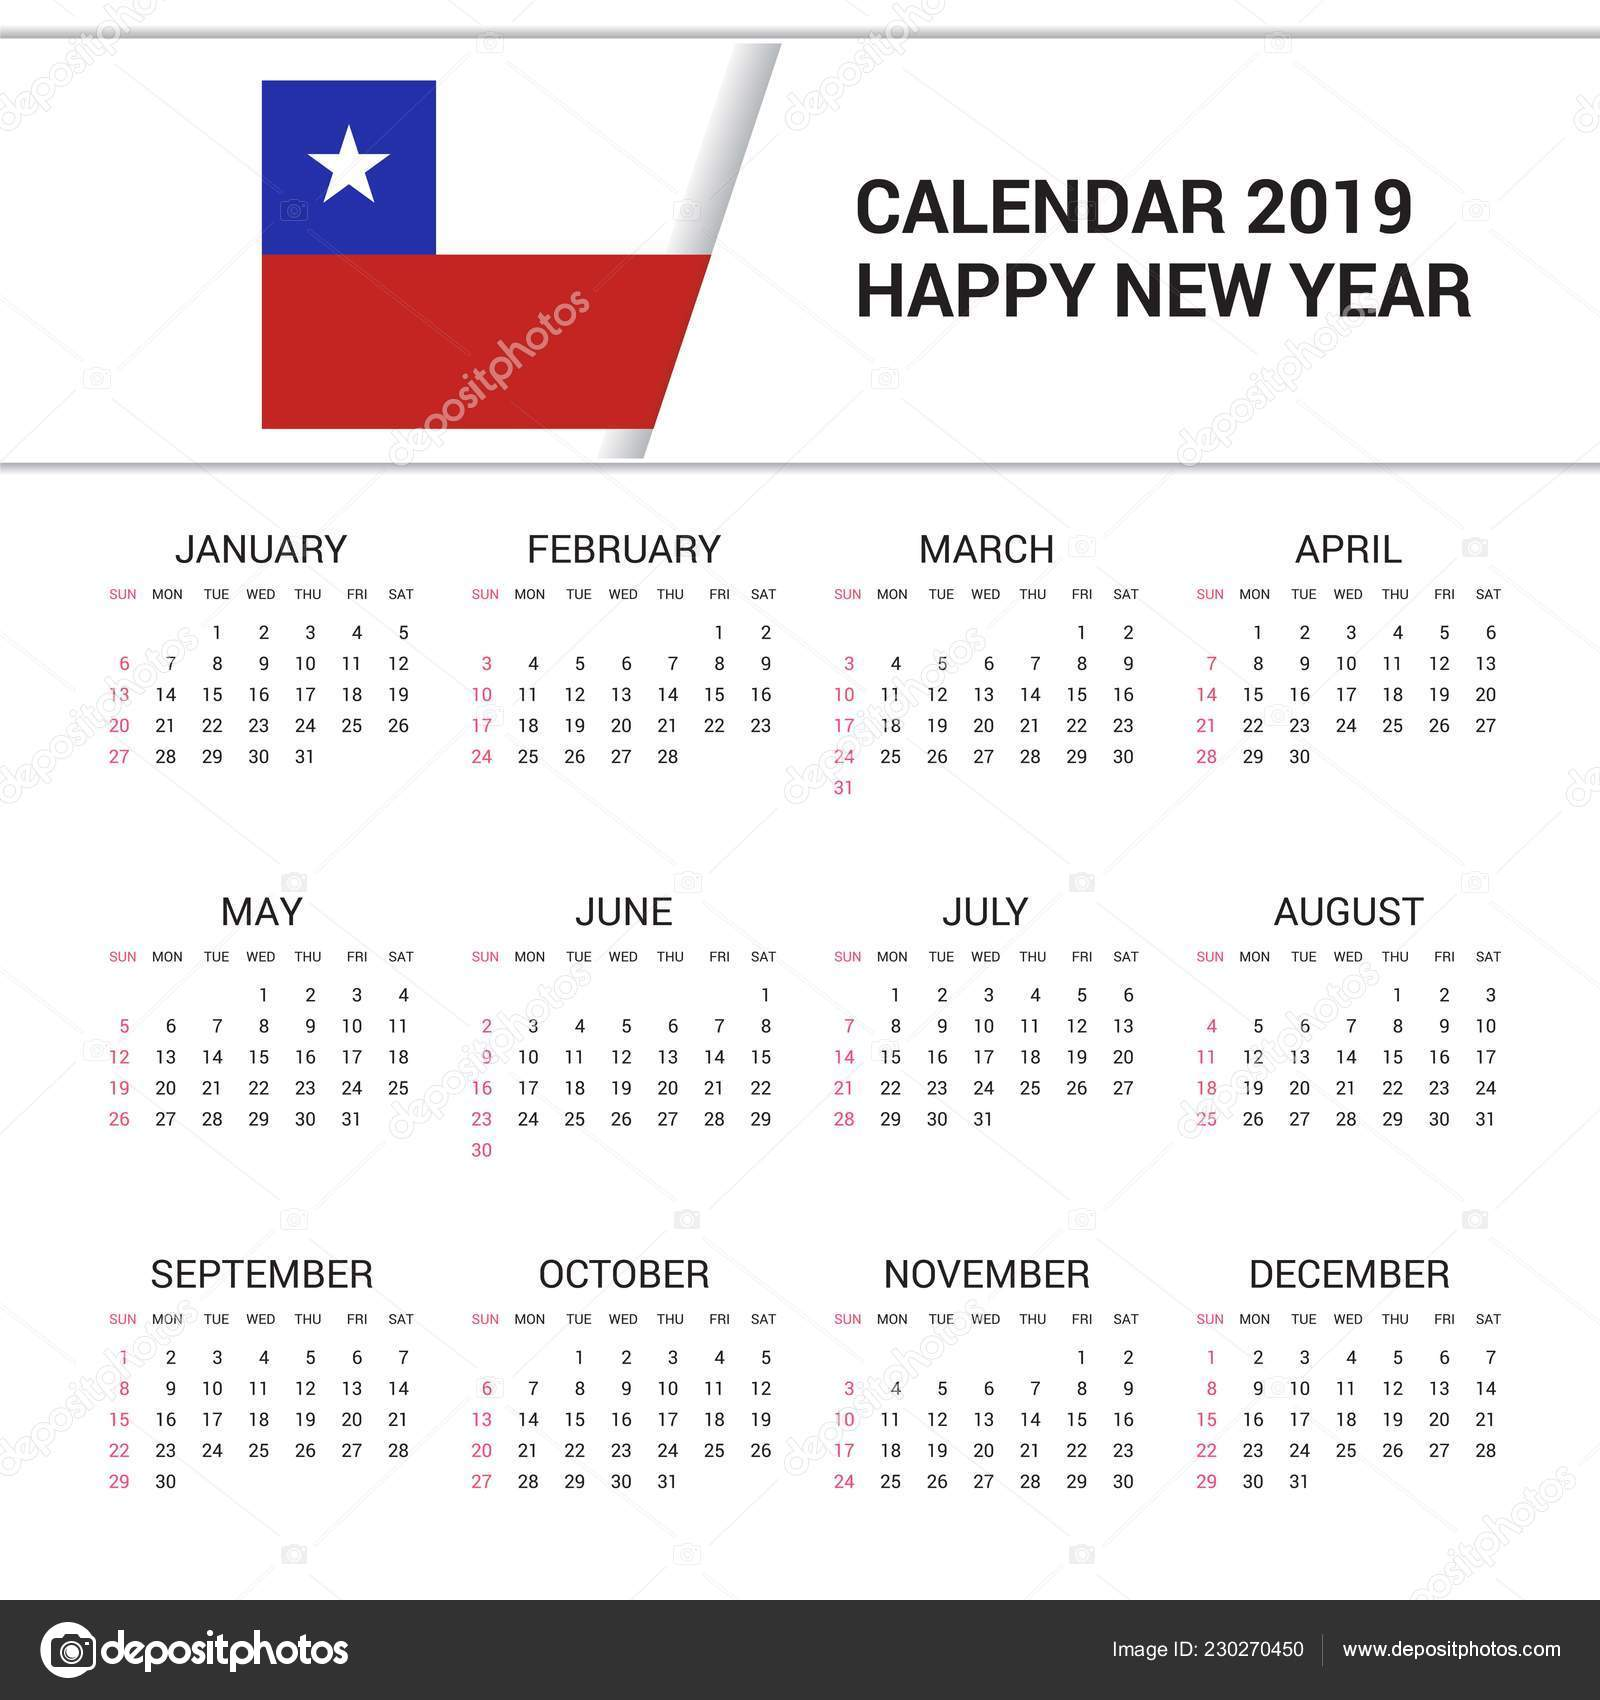 Calendario Chile 2019.Fondo Calendario 2019 Chile Bandera Idioma Ingles Vector